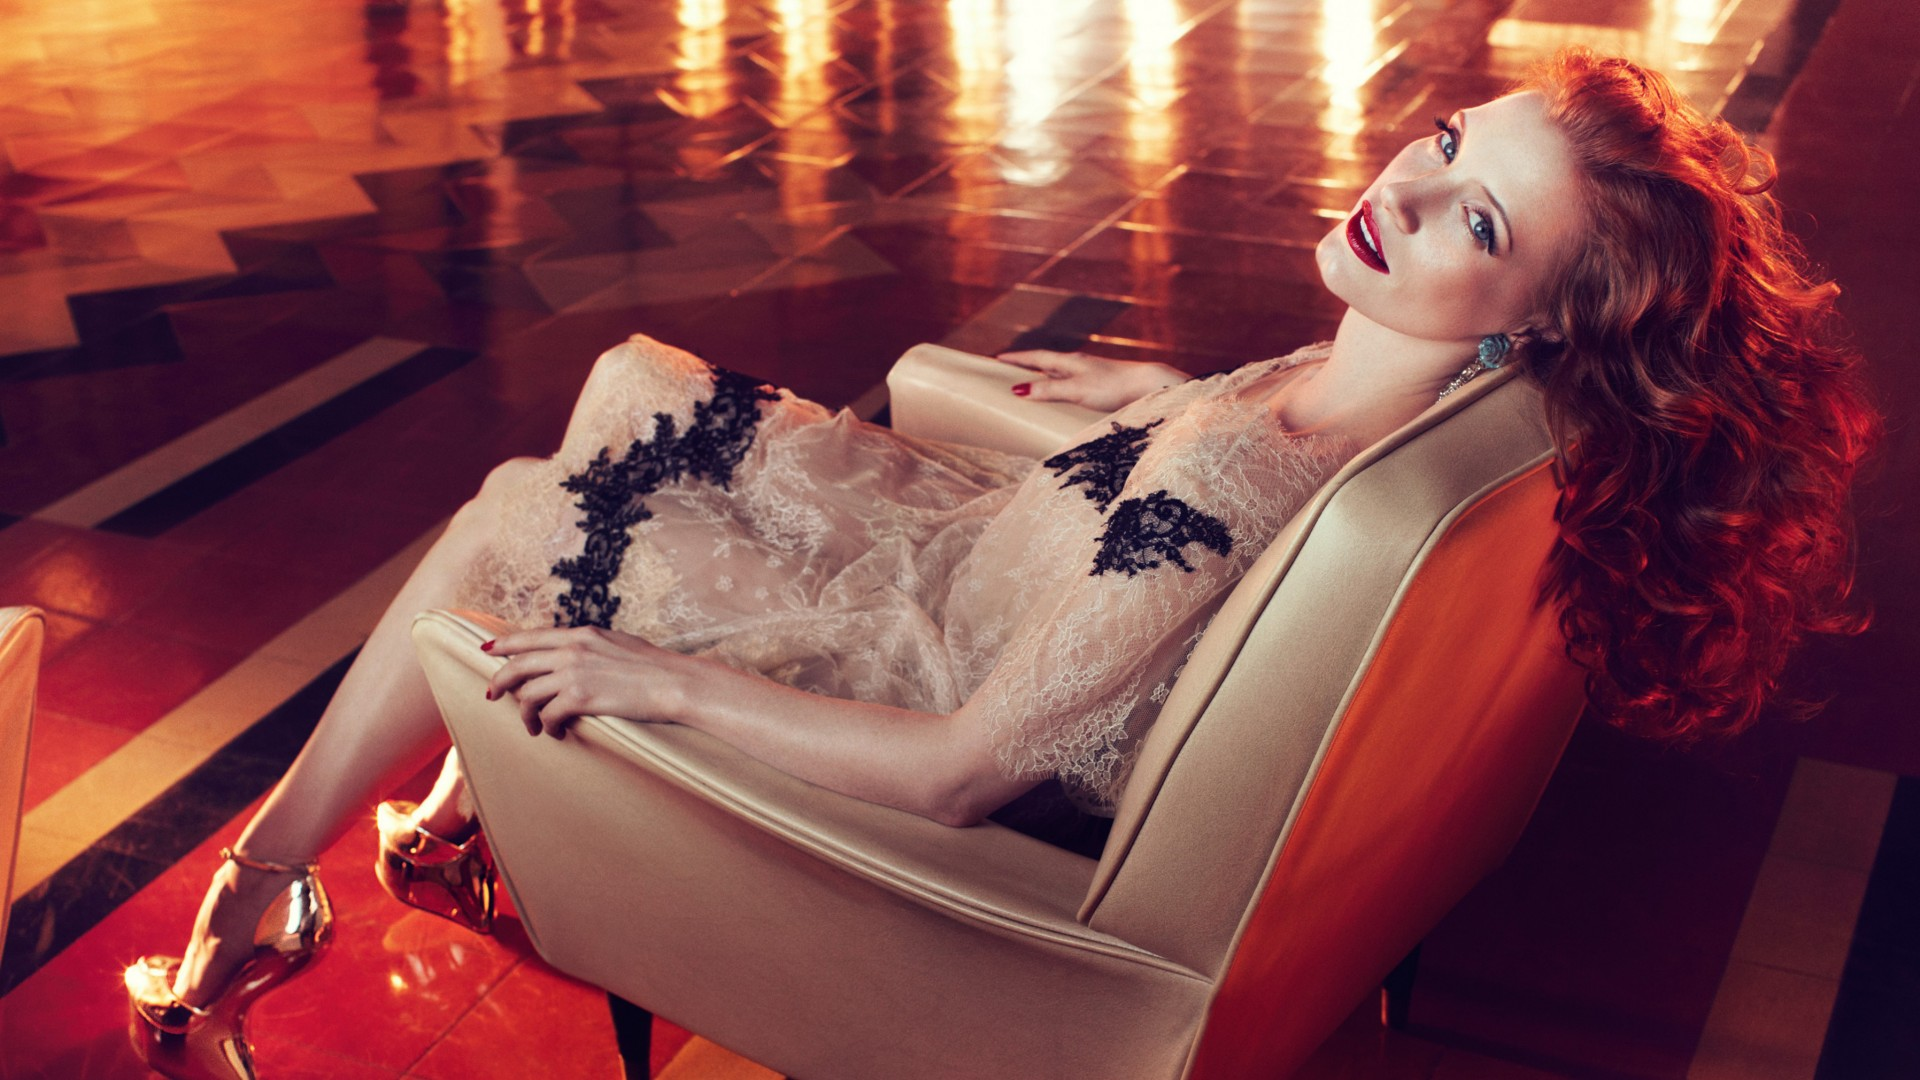 Jessica Chastain, Actress, television star, red hair, beauty, dress, red lips, interior, Vogue Italia (horizontal)